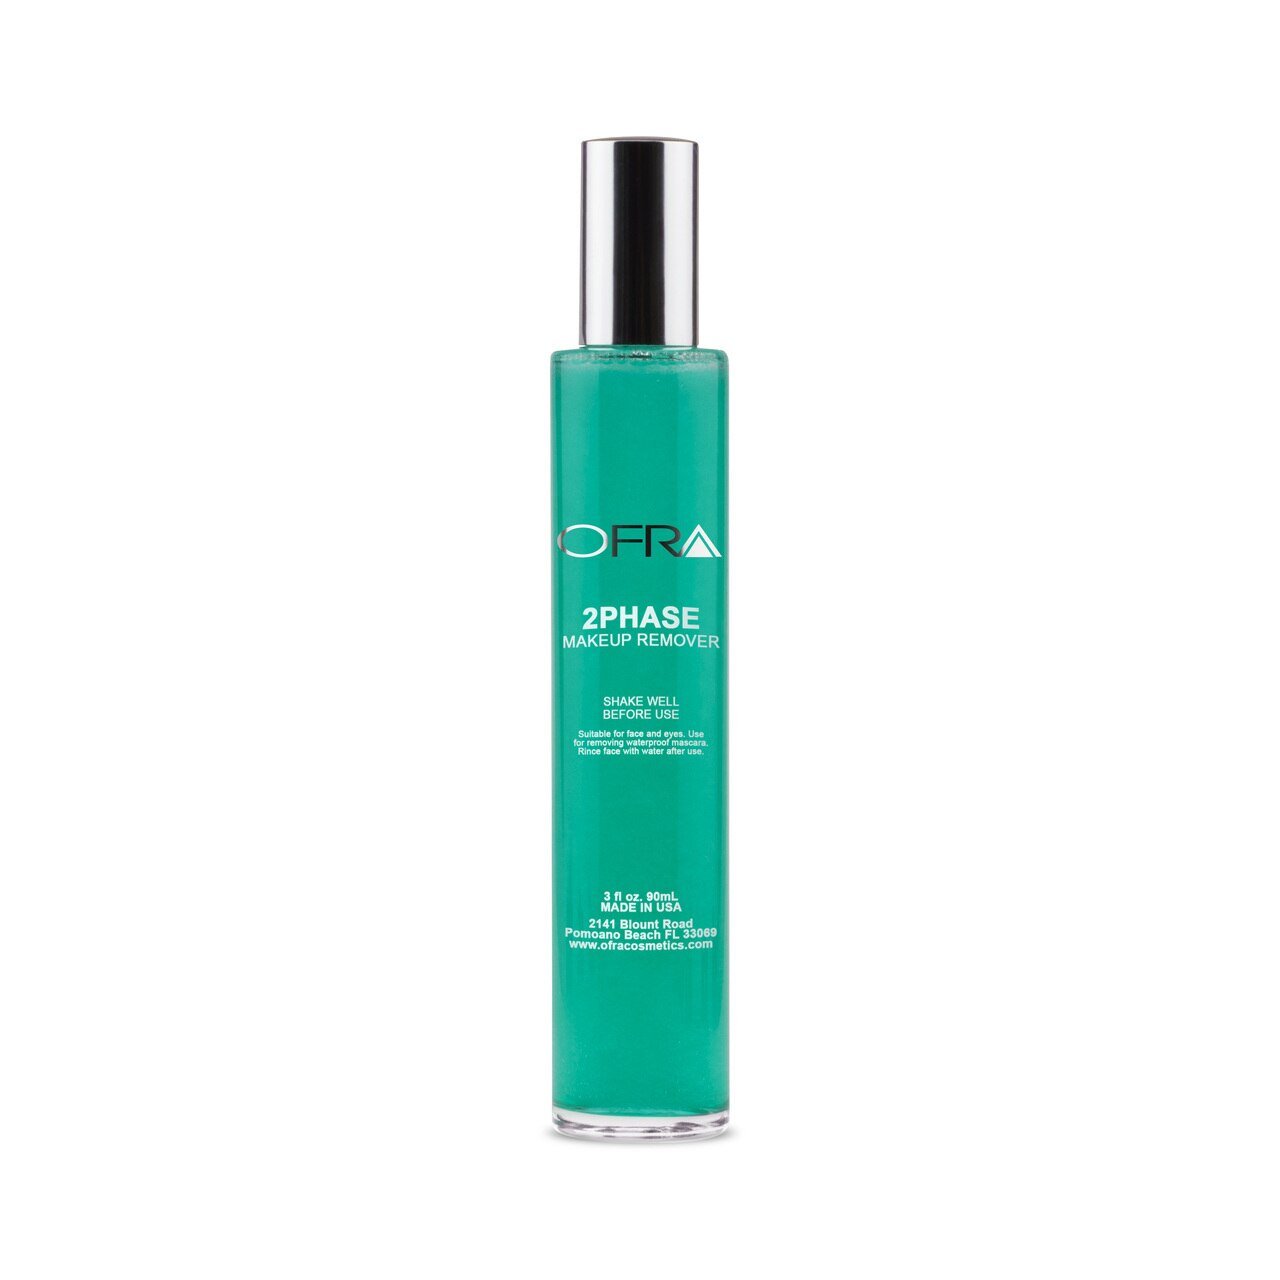 2Phase Makeup Remover